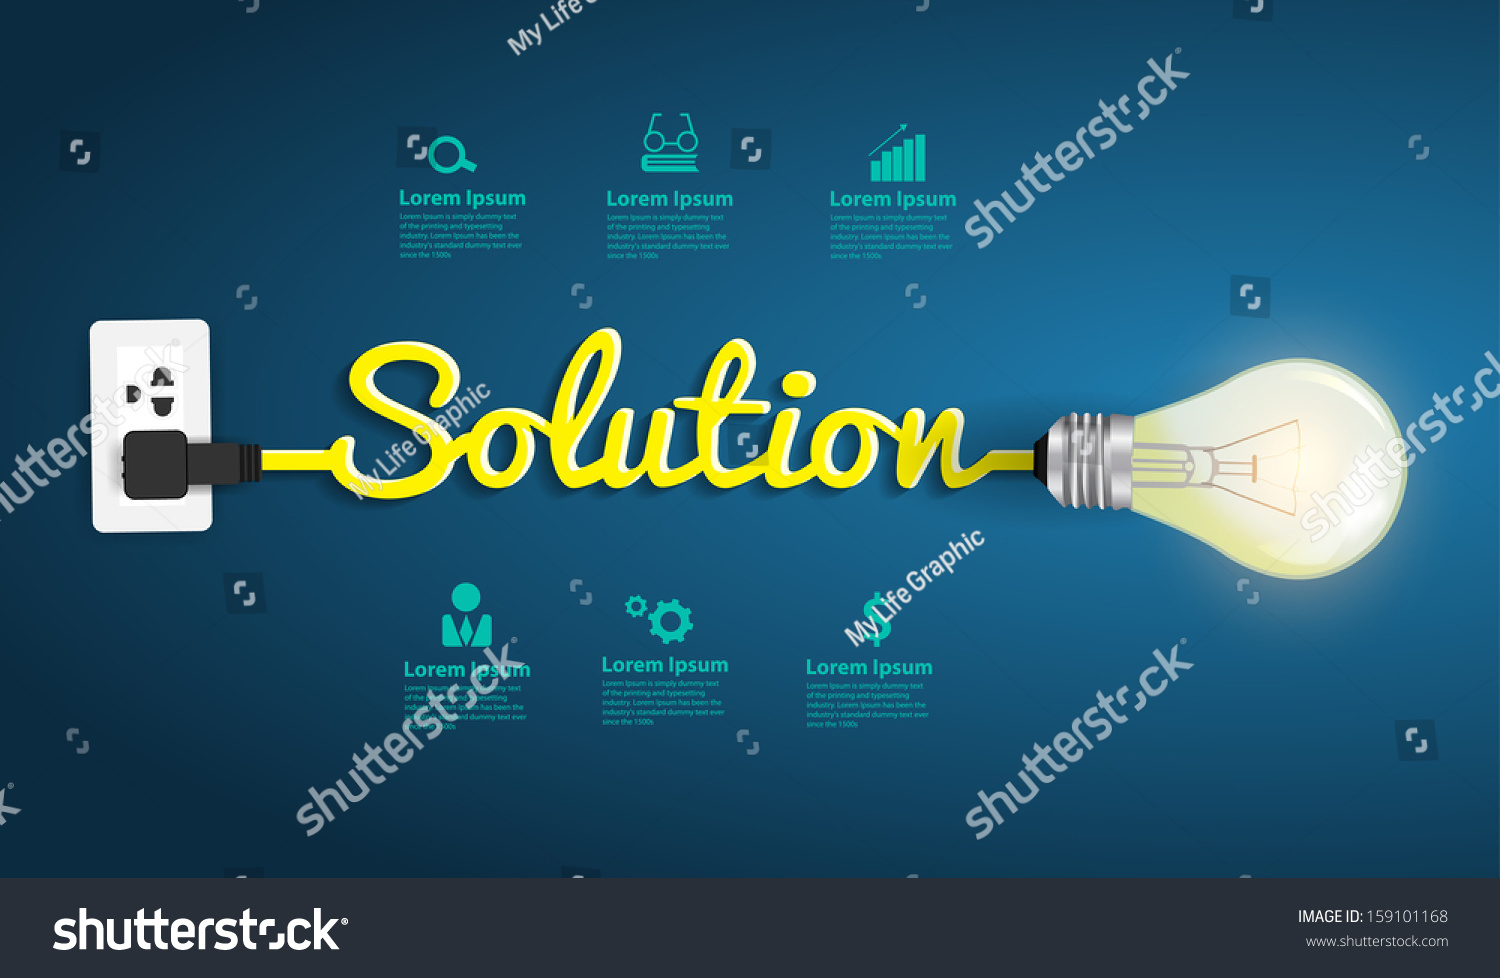 euthanasia the solution is a bad idea Rejects the idea that active euthanasia is incompatible with the fundamental professional commitments of a physician appeals to the centrality of 2 fundamental values: individual autonomy (self-determination) & individual well being.